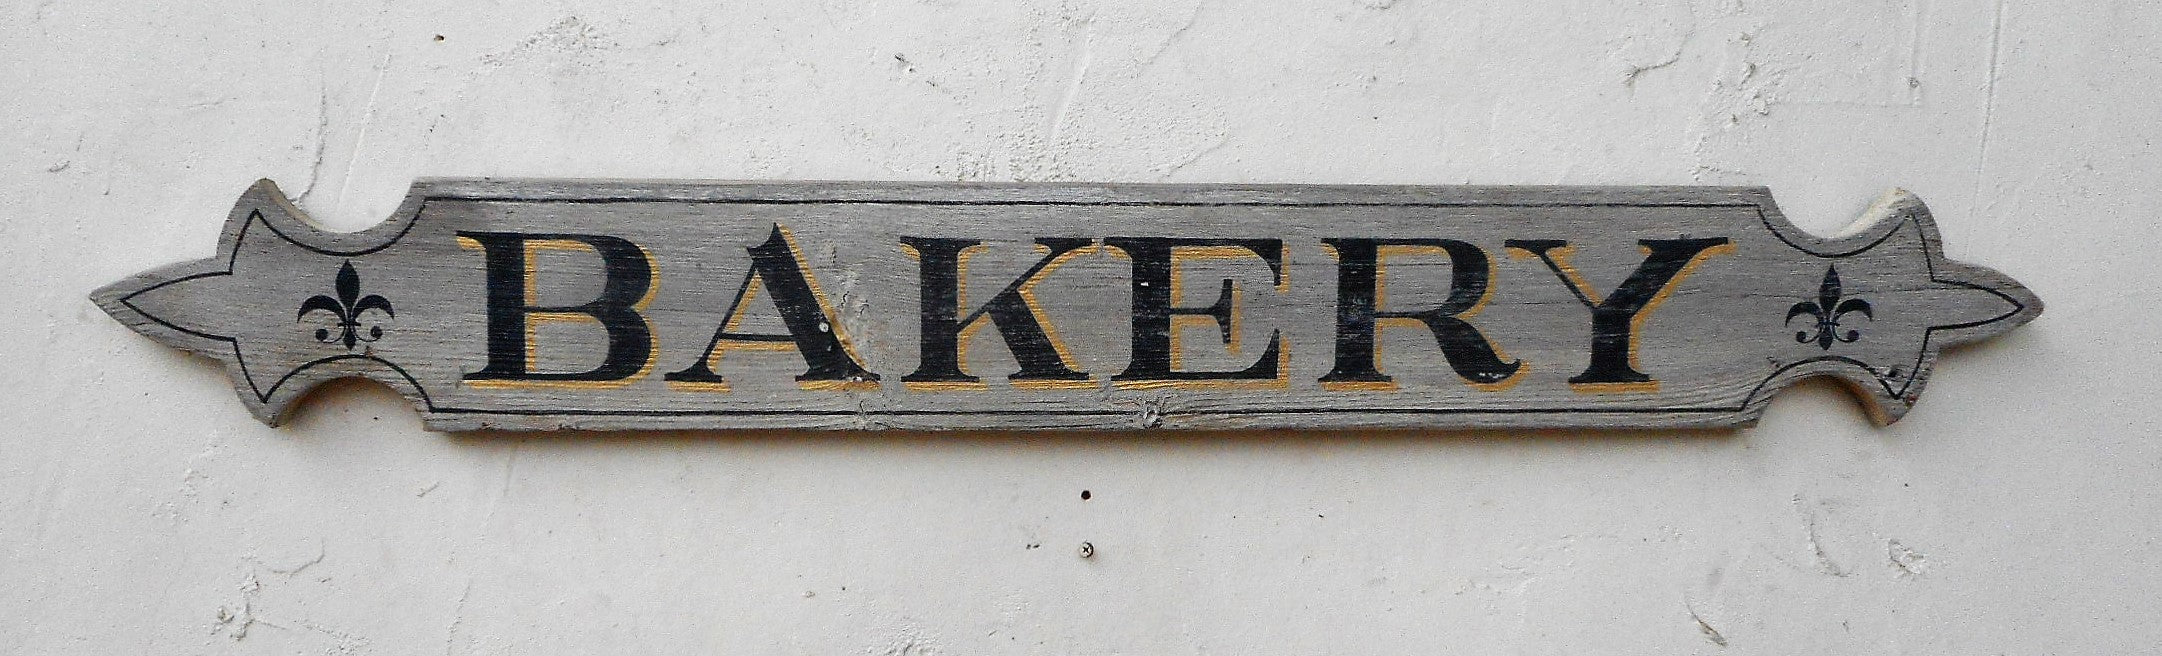 Bakery Quarterboard